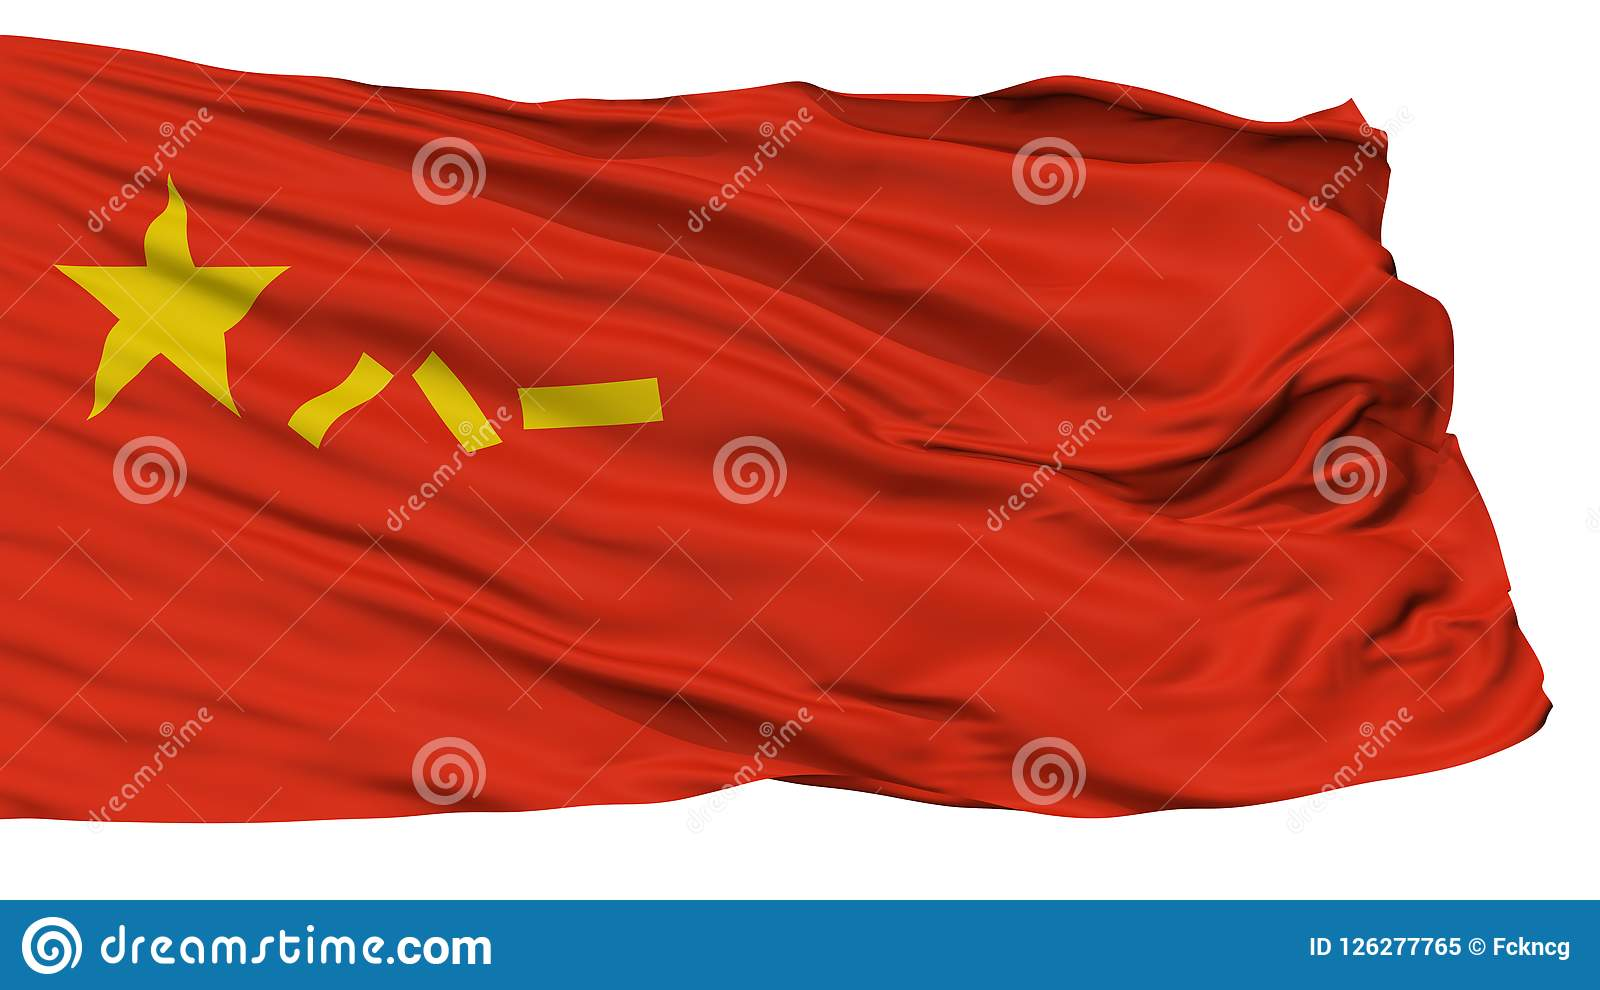 Peoples Liberation Army Peoples Republic Of China Flag